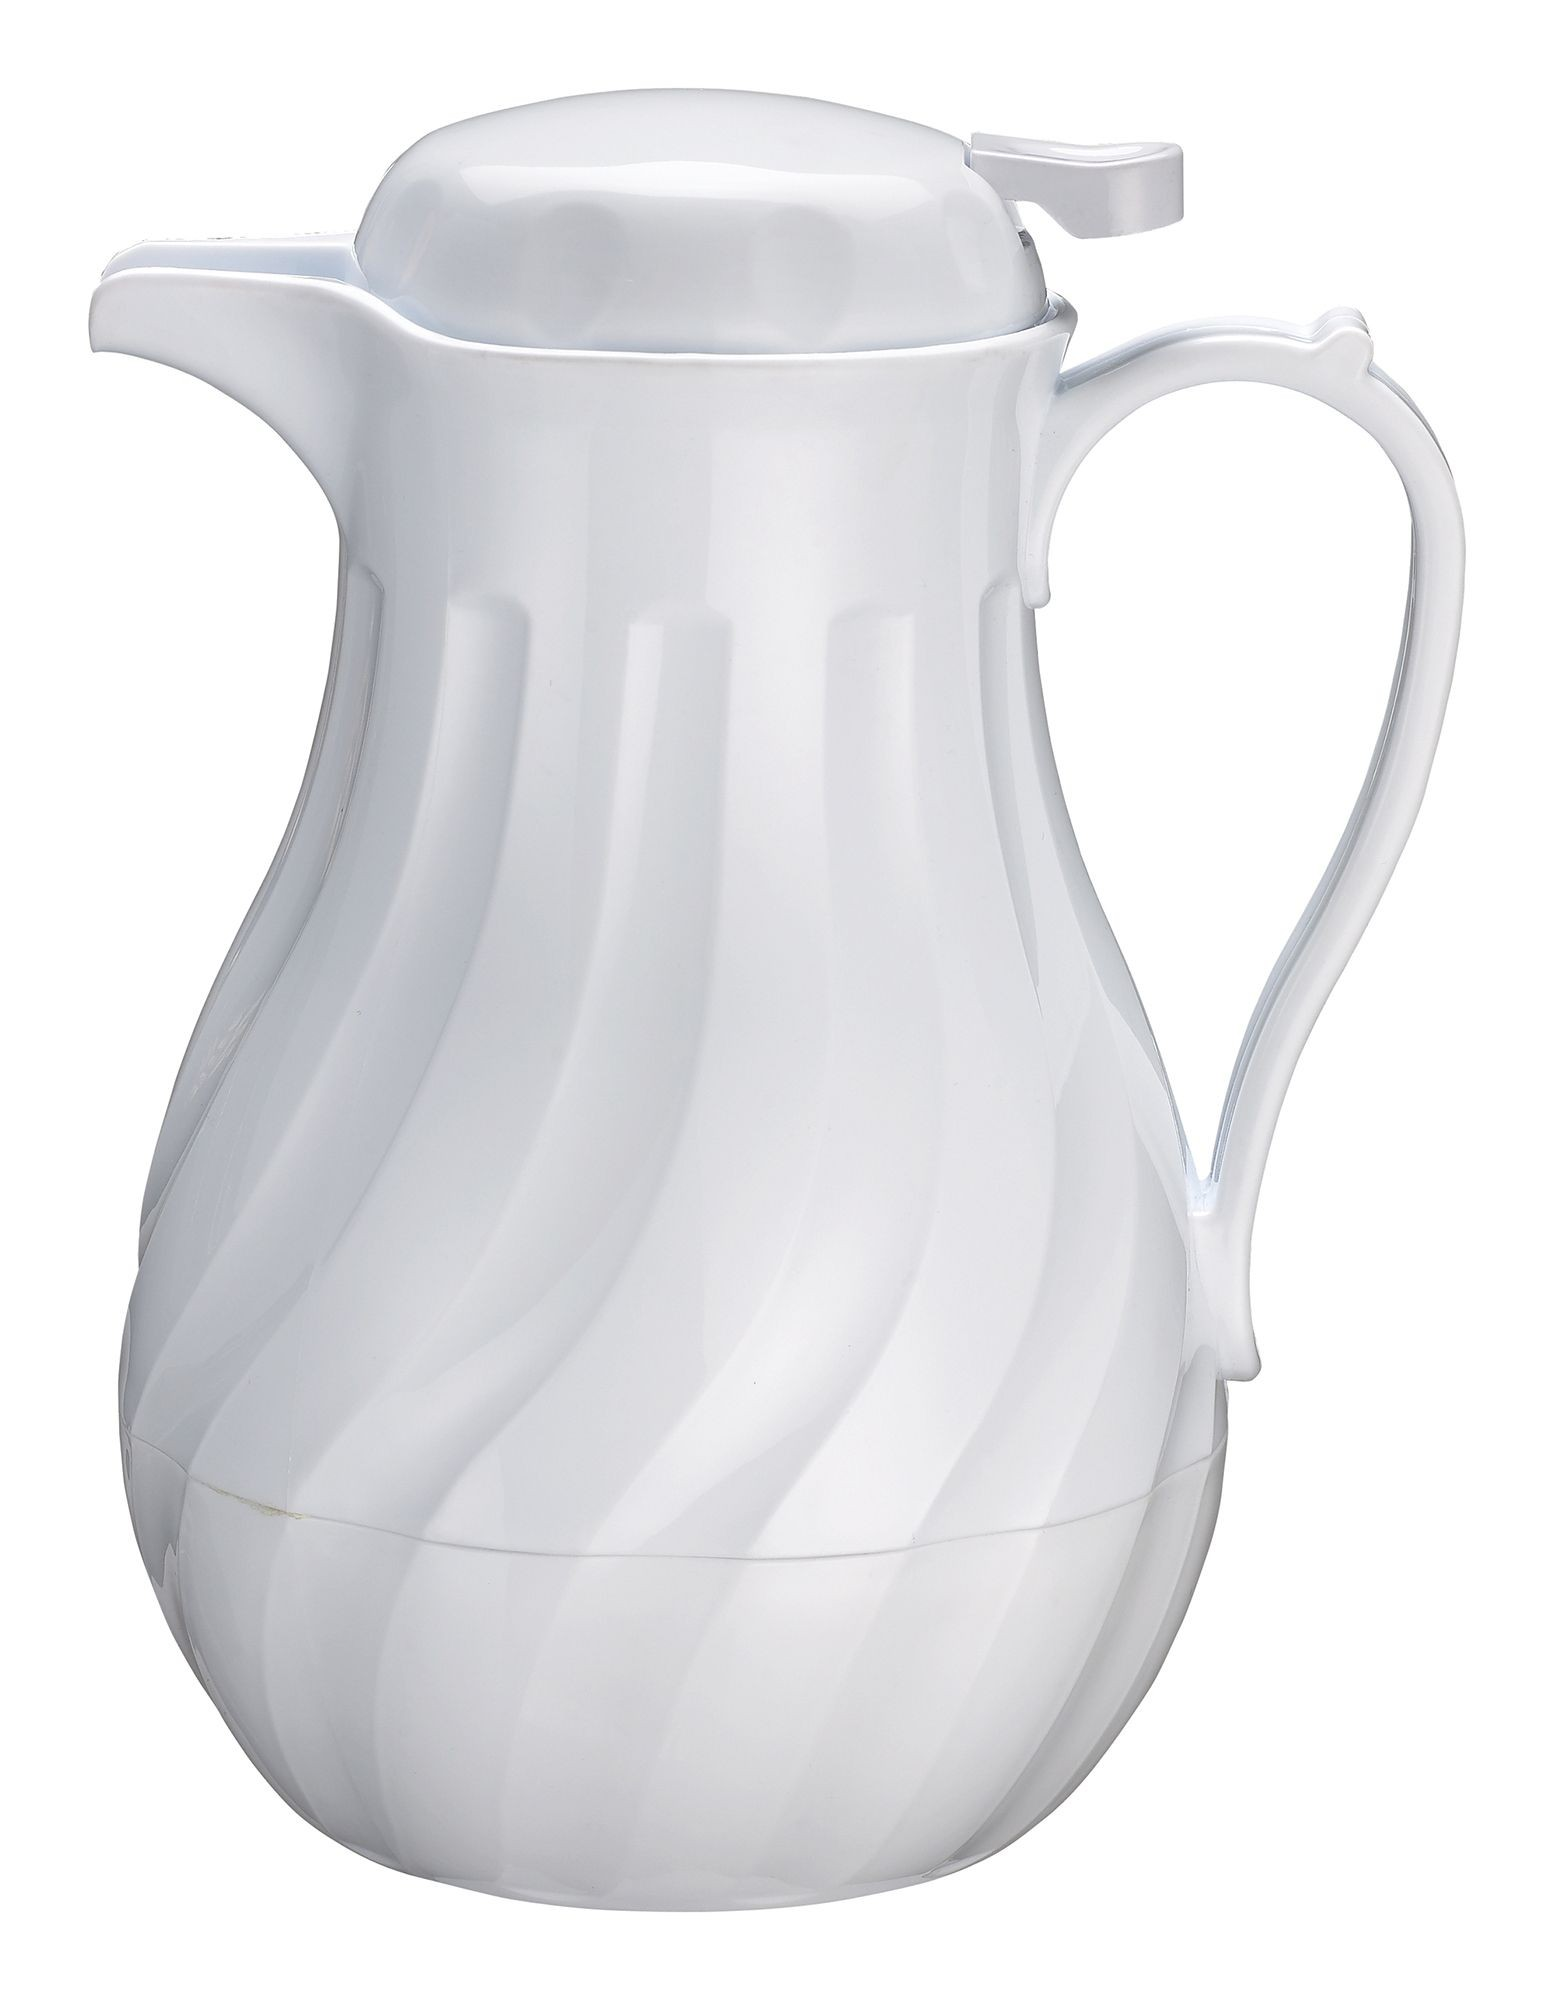 64 Oz. White Swirl Thermal Carafe